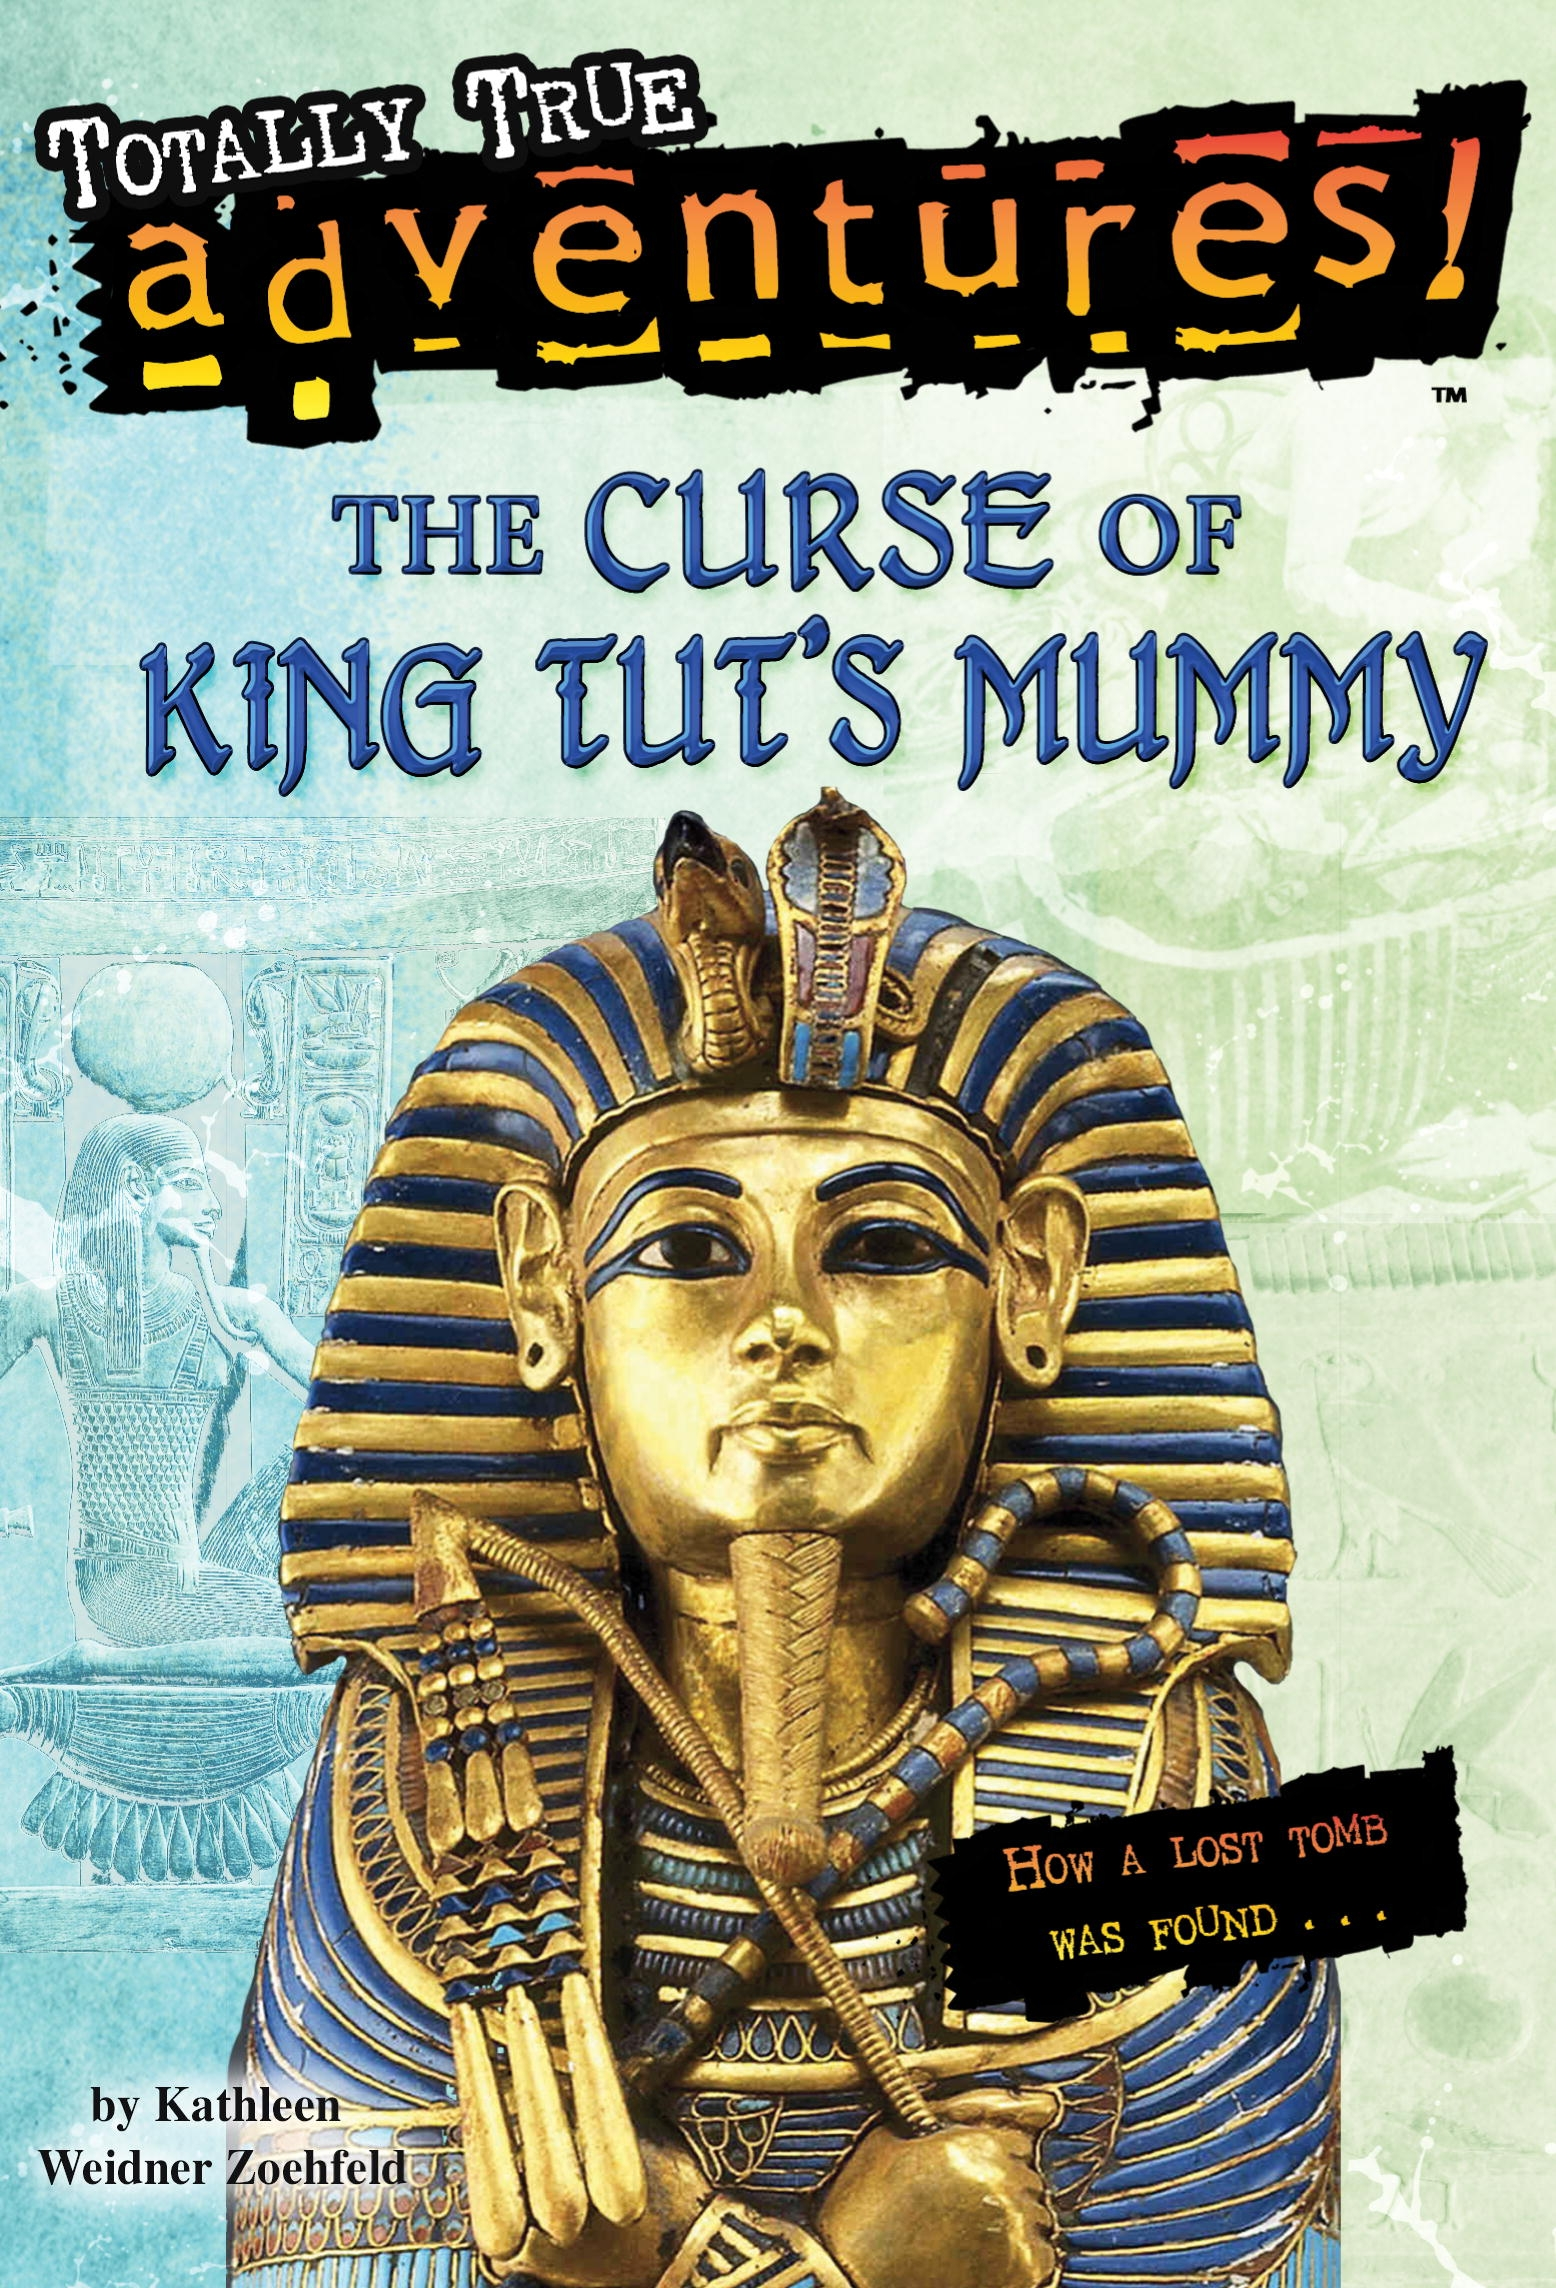 The Curse Of King Tuts Tomb Torrent: Stepping Stones By Kathleen Weidner Zoehfeld